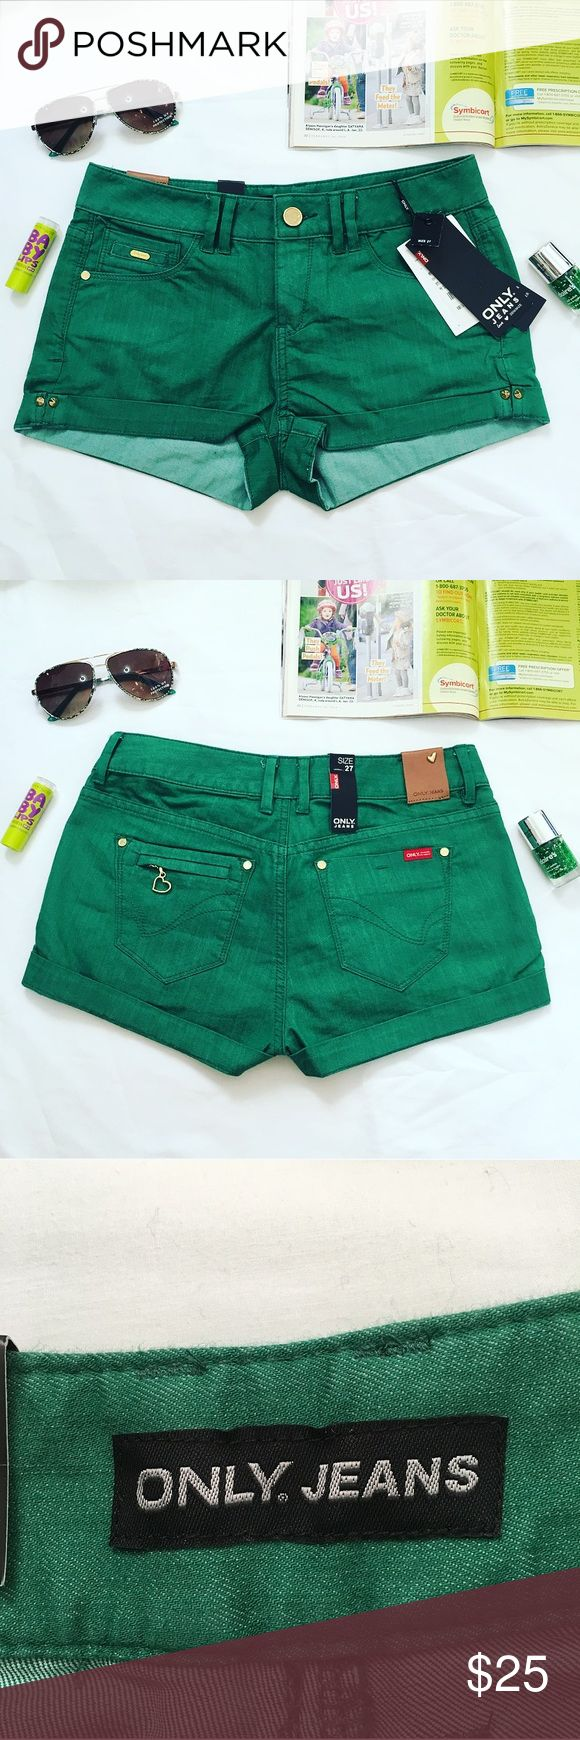 Only Jeans Green Denim Shorts Brand new with tag Shorts Jean Shorts